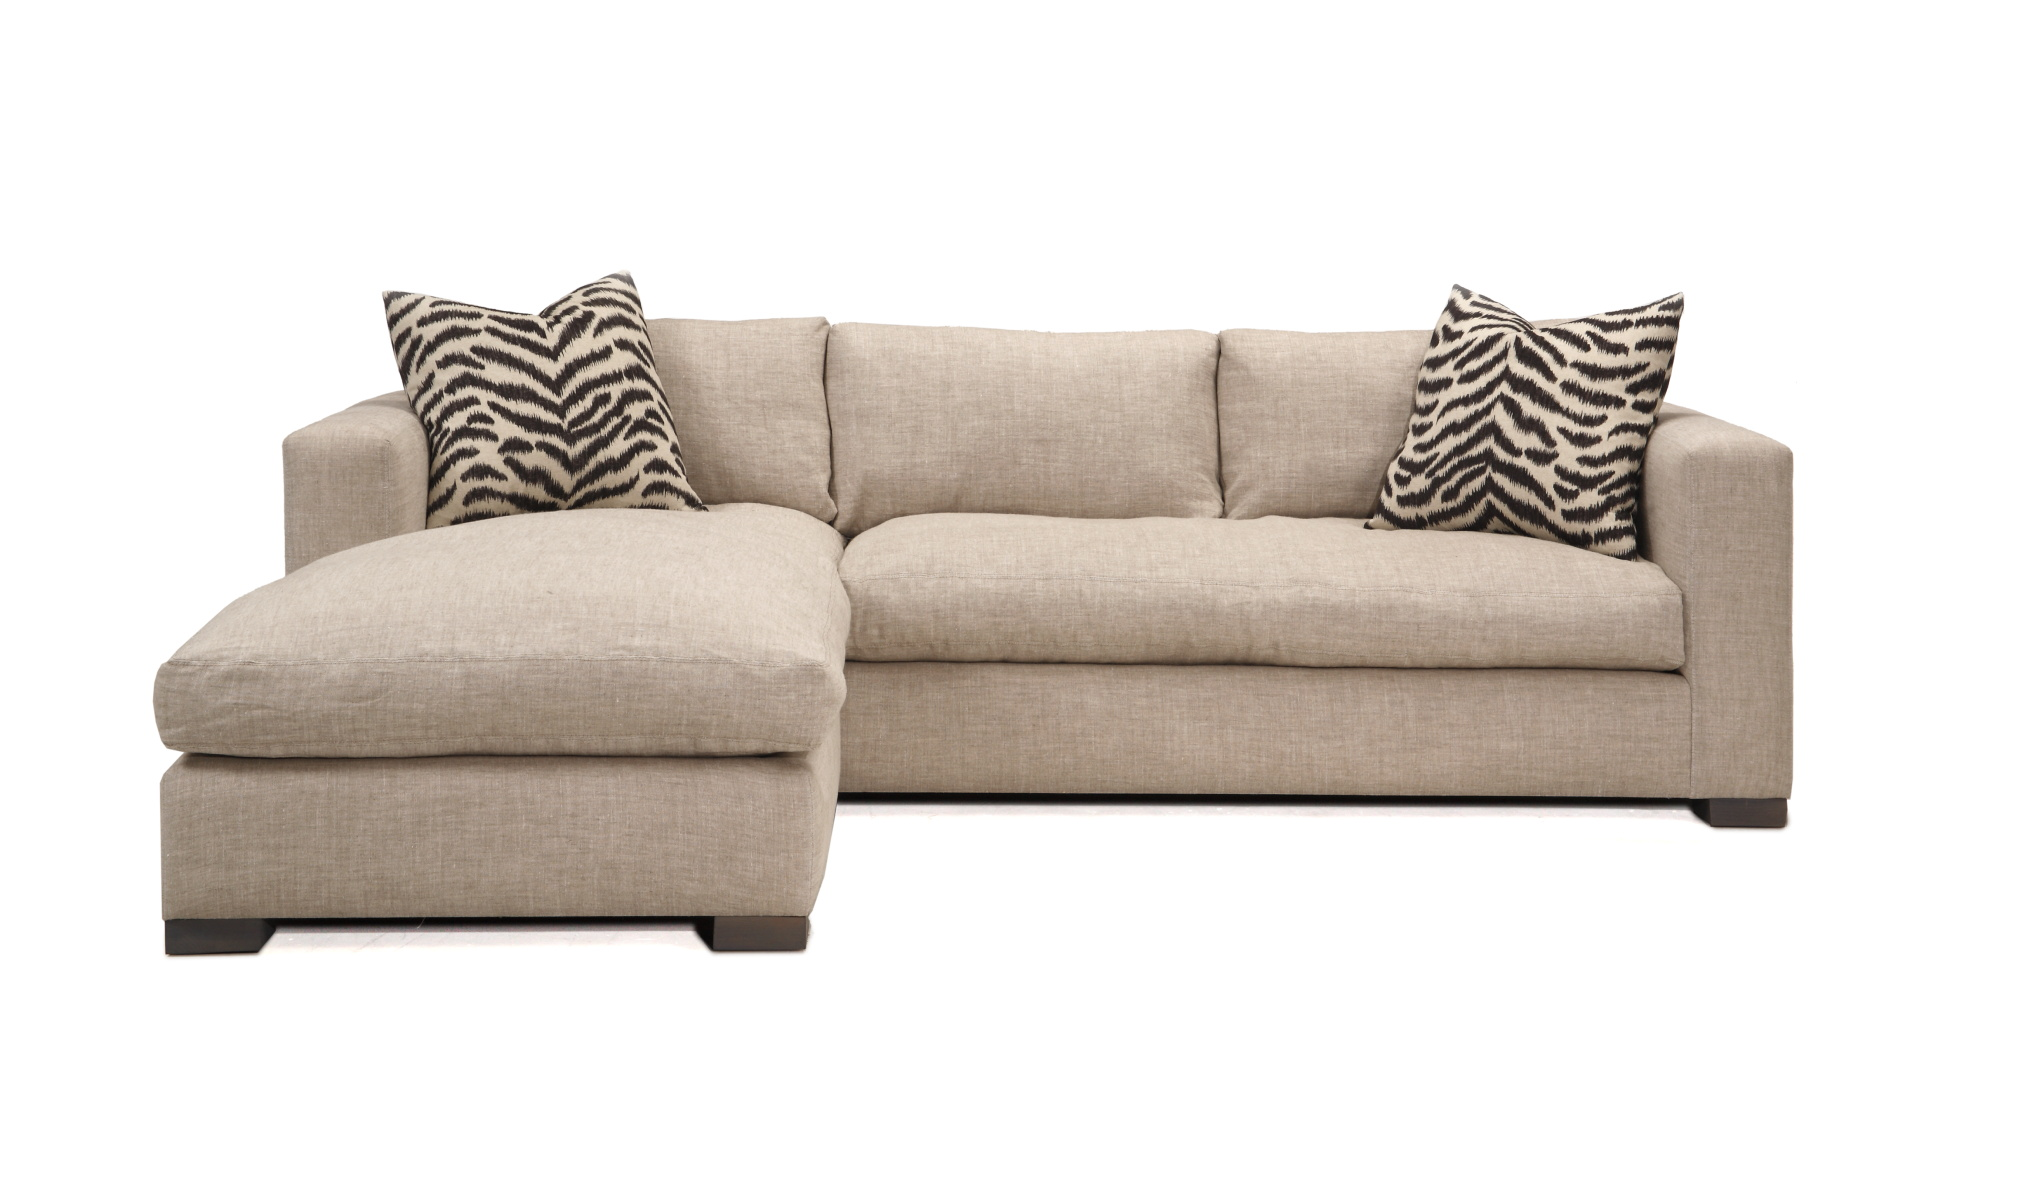 Morgan Sectional With Reversible Chaise/Ottoman